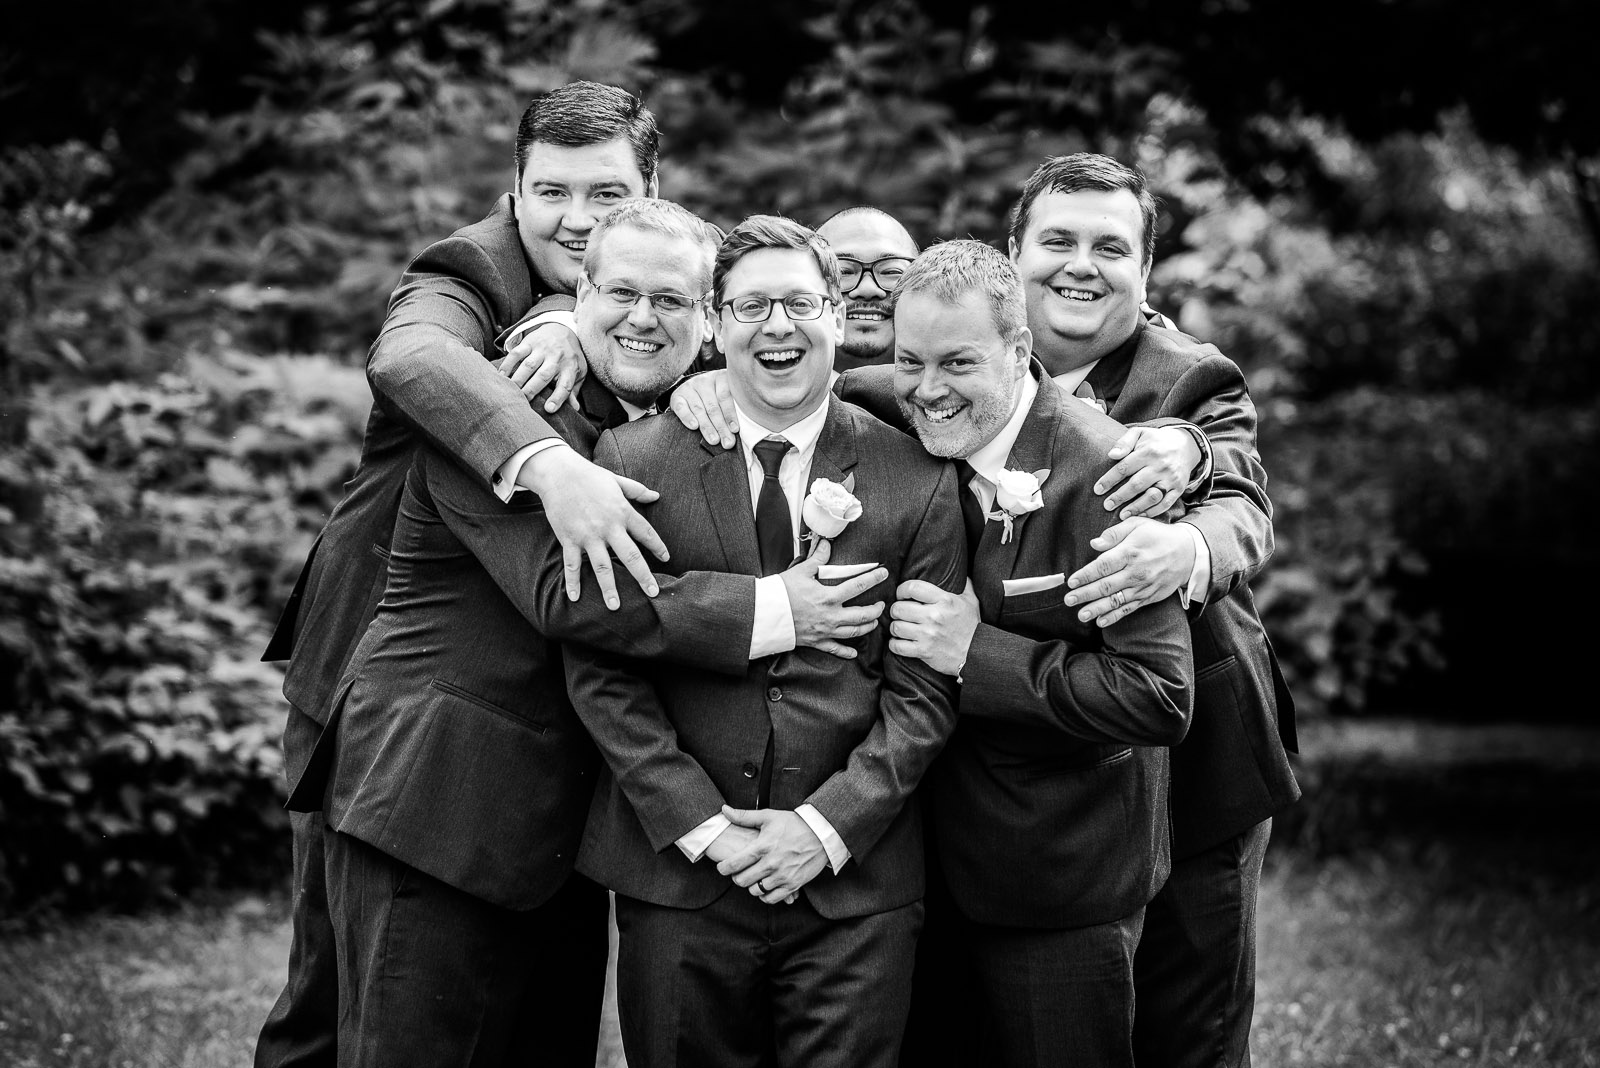 Eric_and_Christy_Photography_Blog_Wedding_Keara&Andy-28